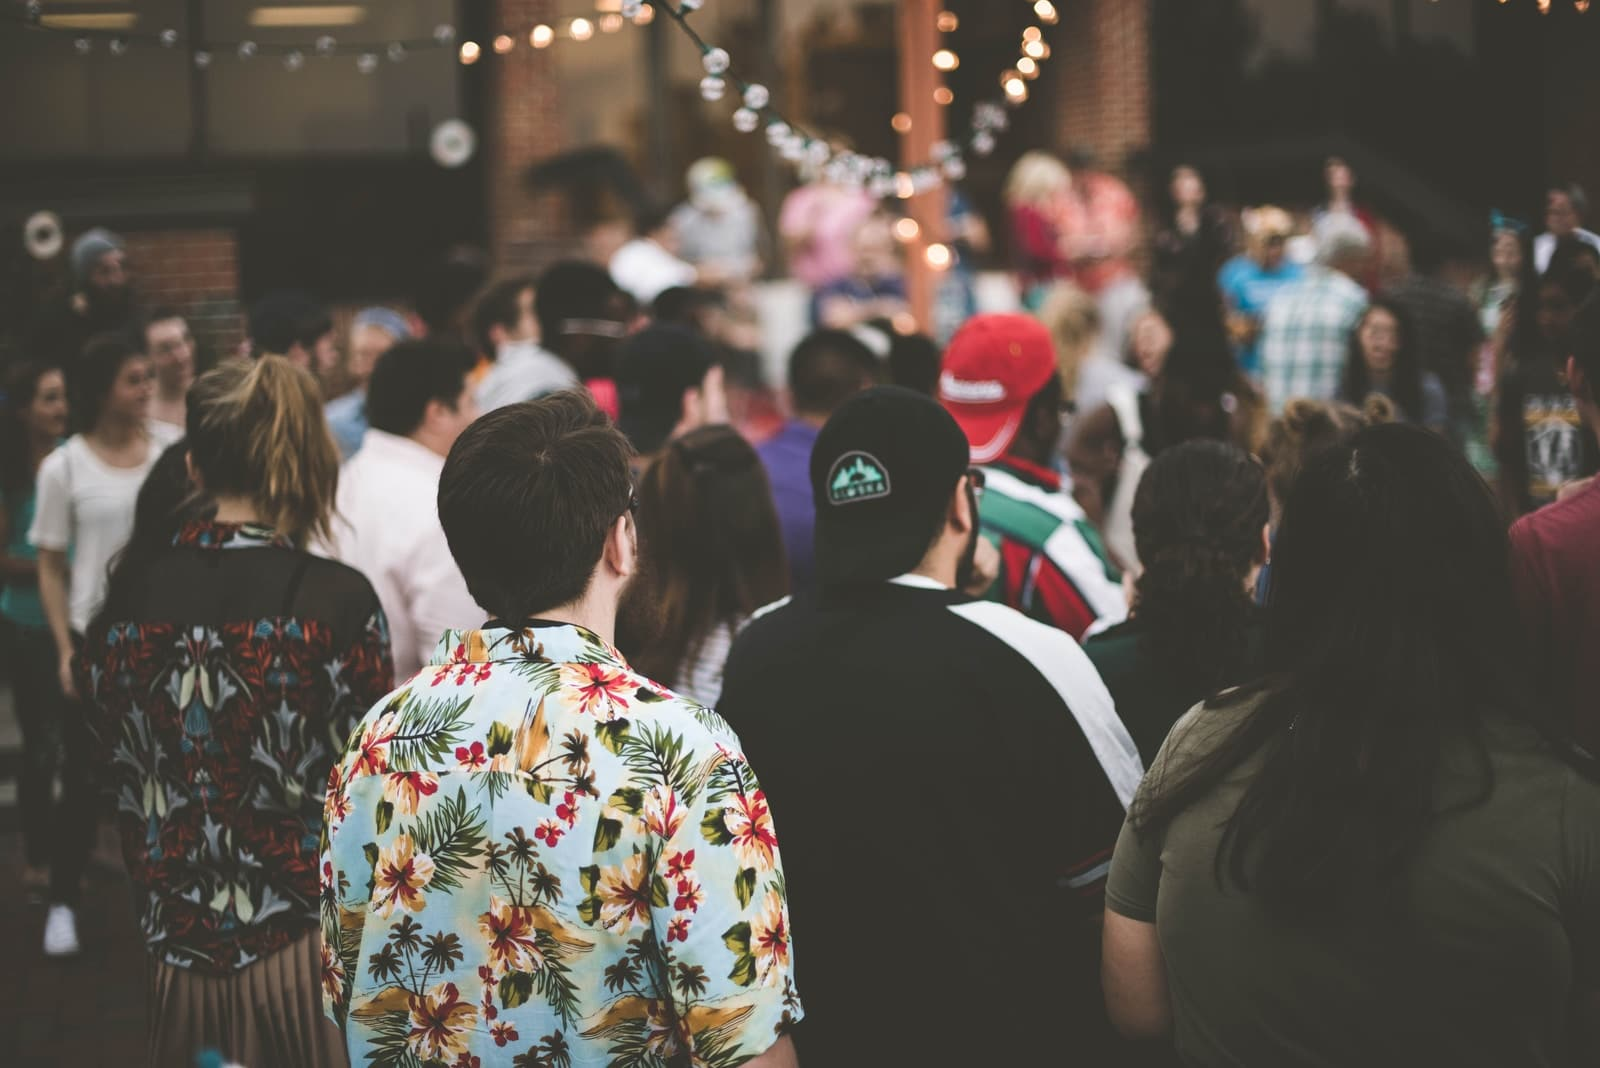 group of people standing under string lights